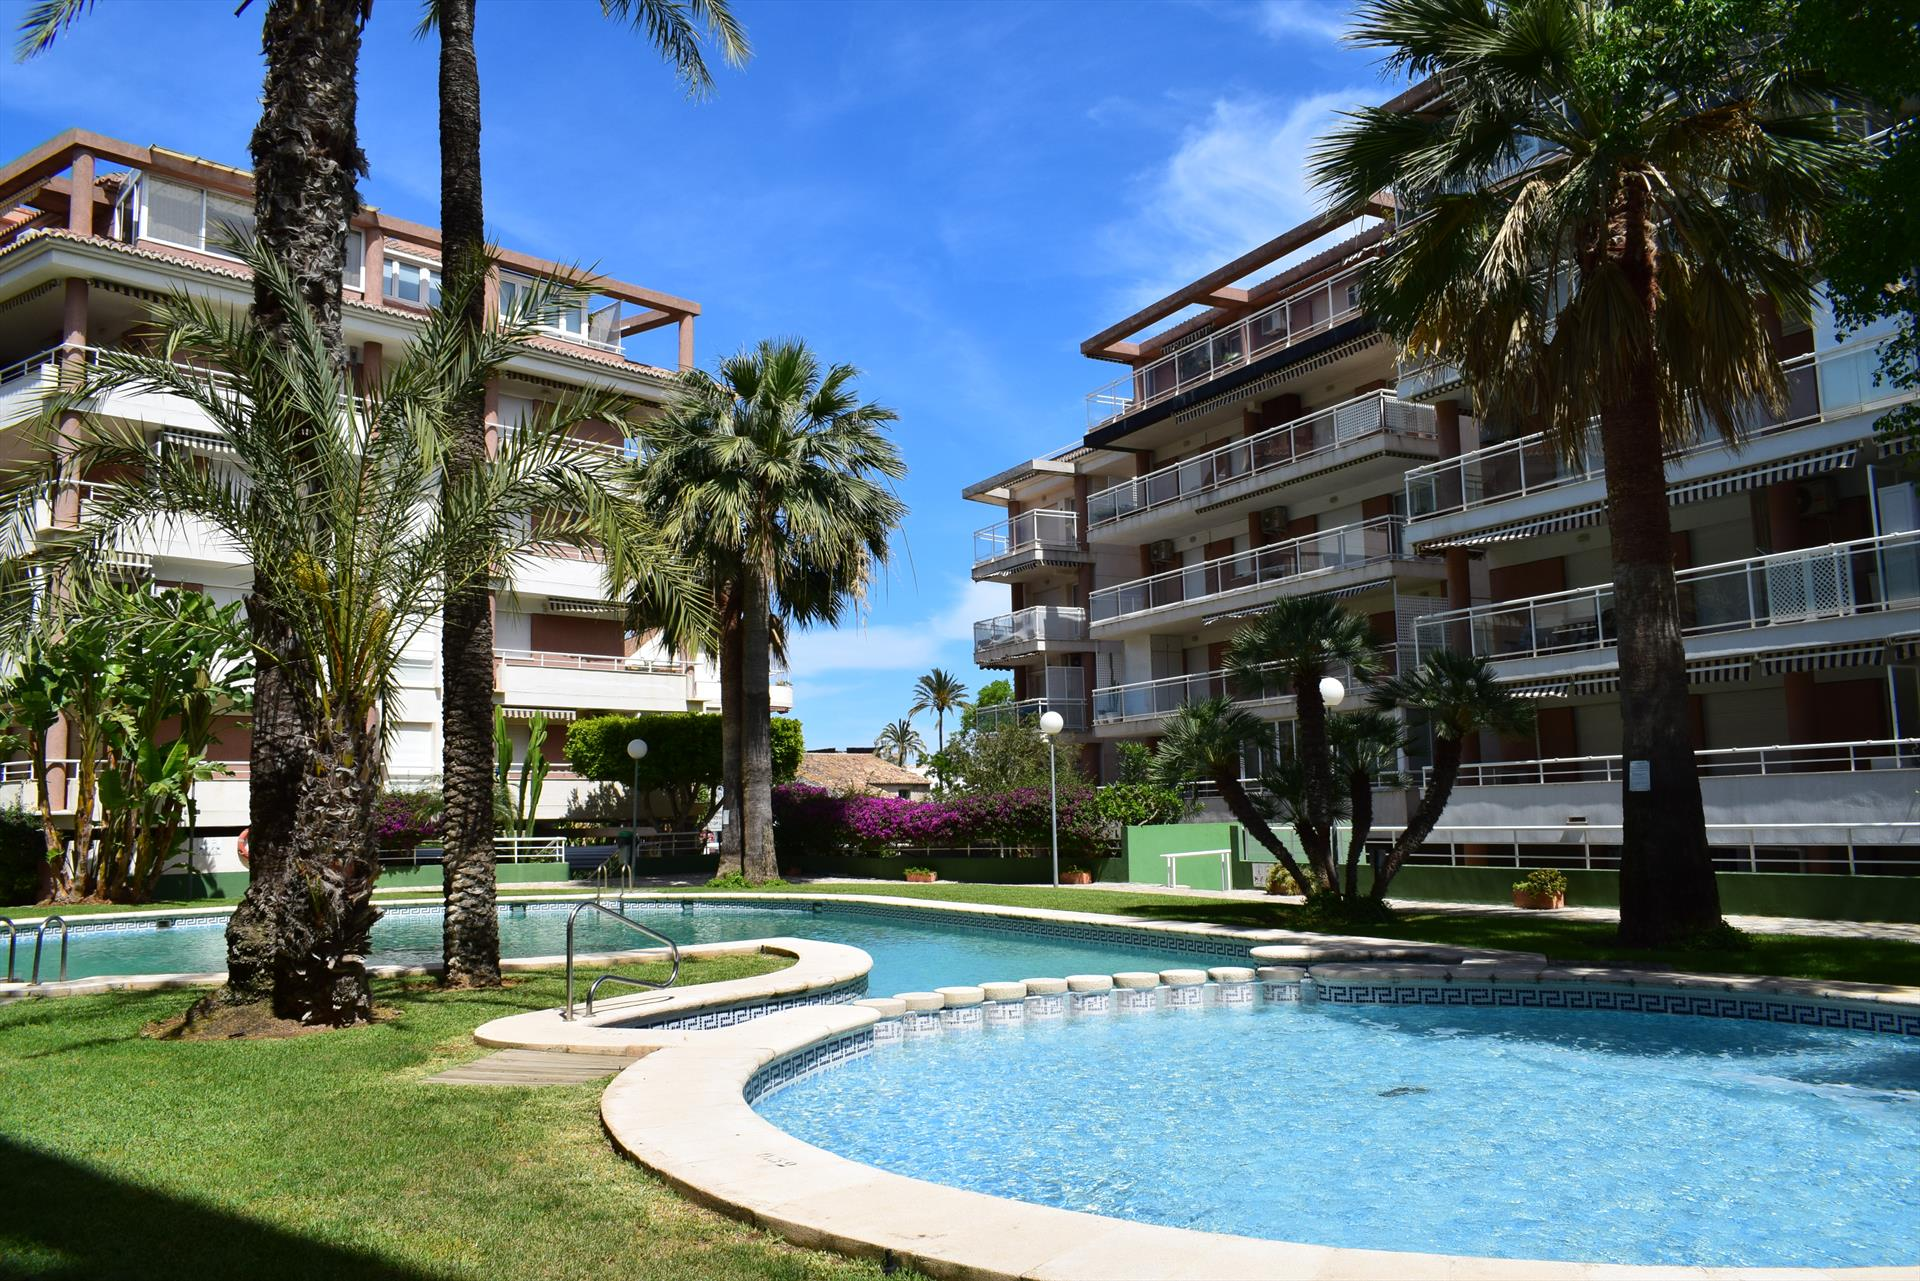 AP1112 Apartamento Urbanizacion Dianium, Classic and cheerful apartment in Denia, on the Costa Blanca, Spain  with communal pool for 4 persons.....